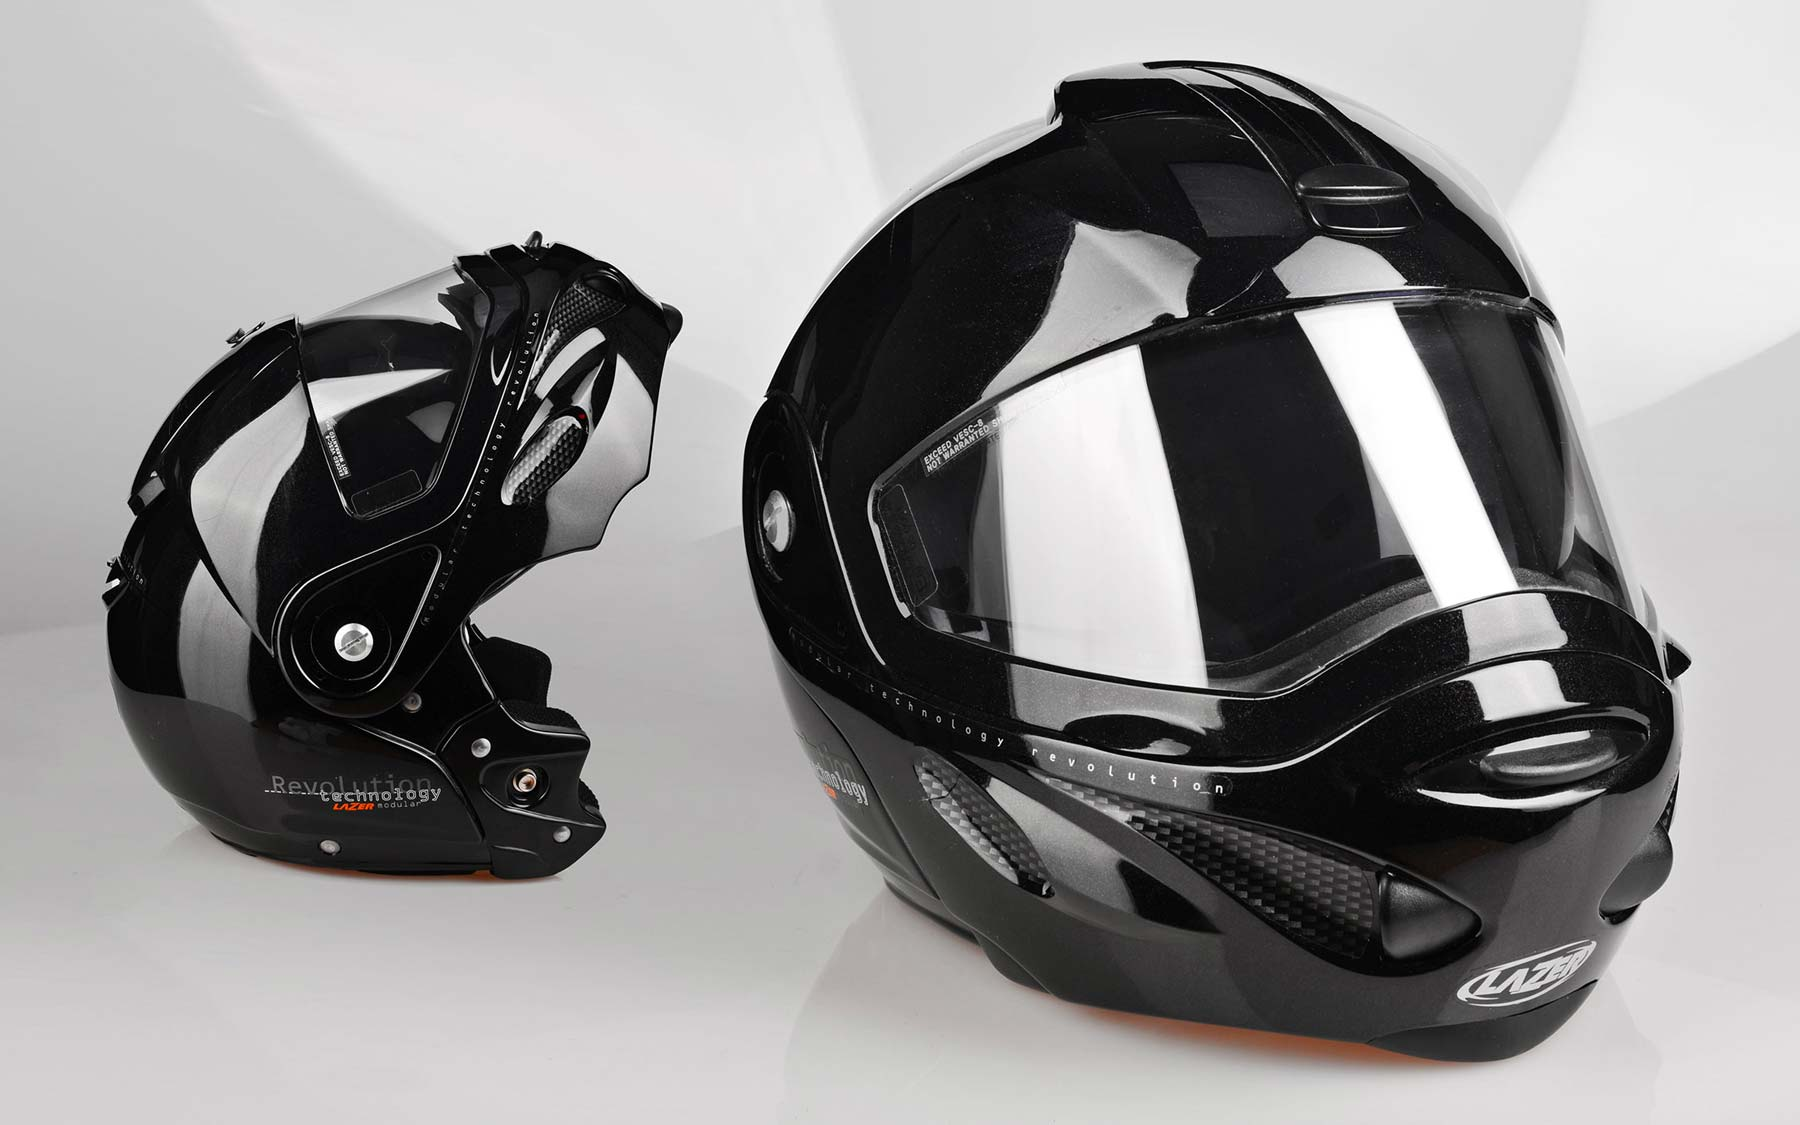 First modular helmet with integrated sun visor: the Revolution-1